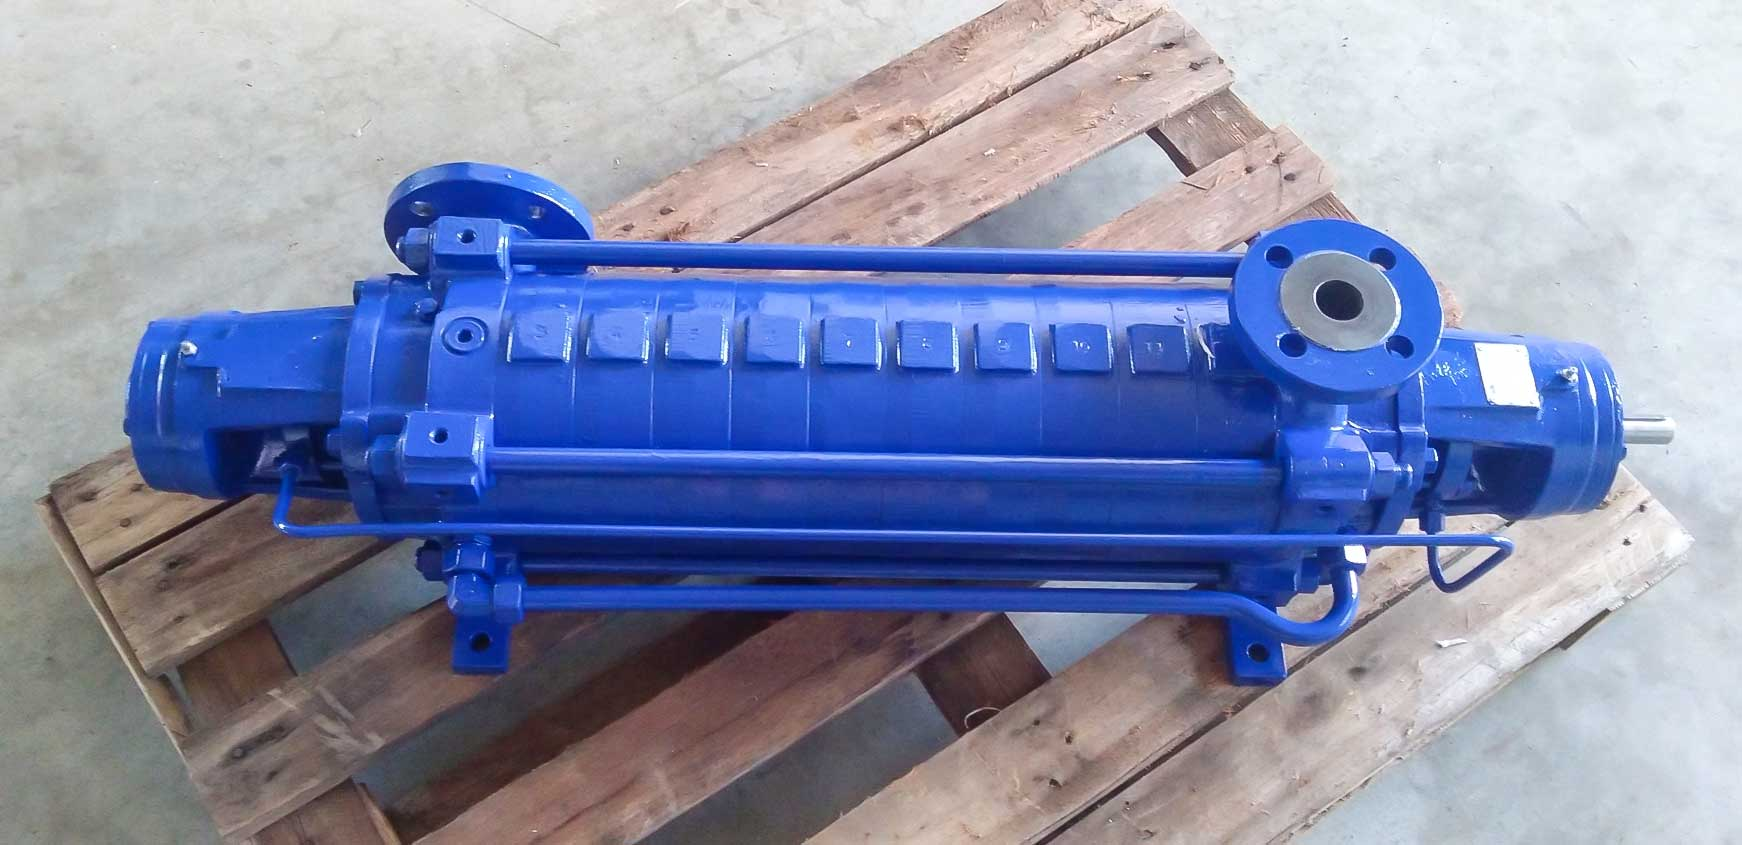 Ksb multistage pump repair